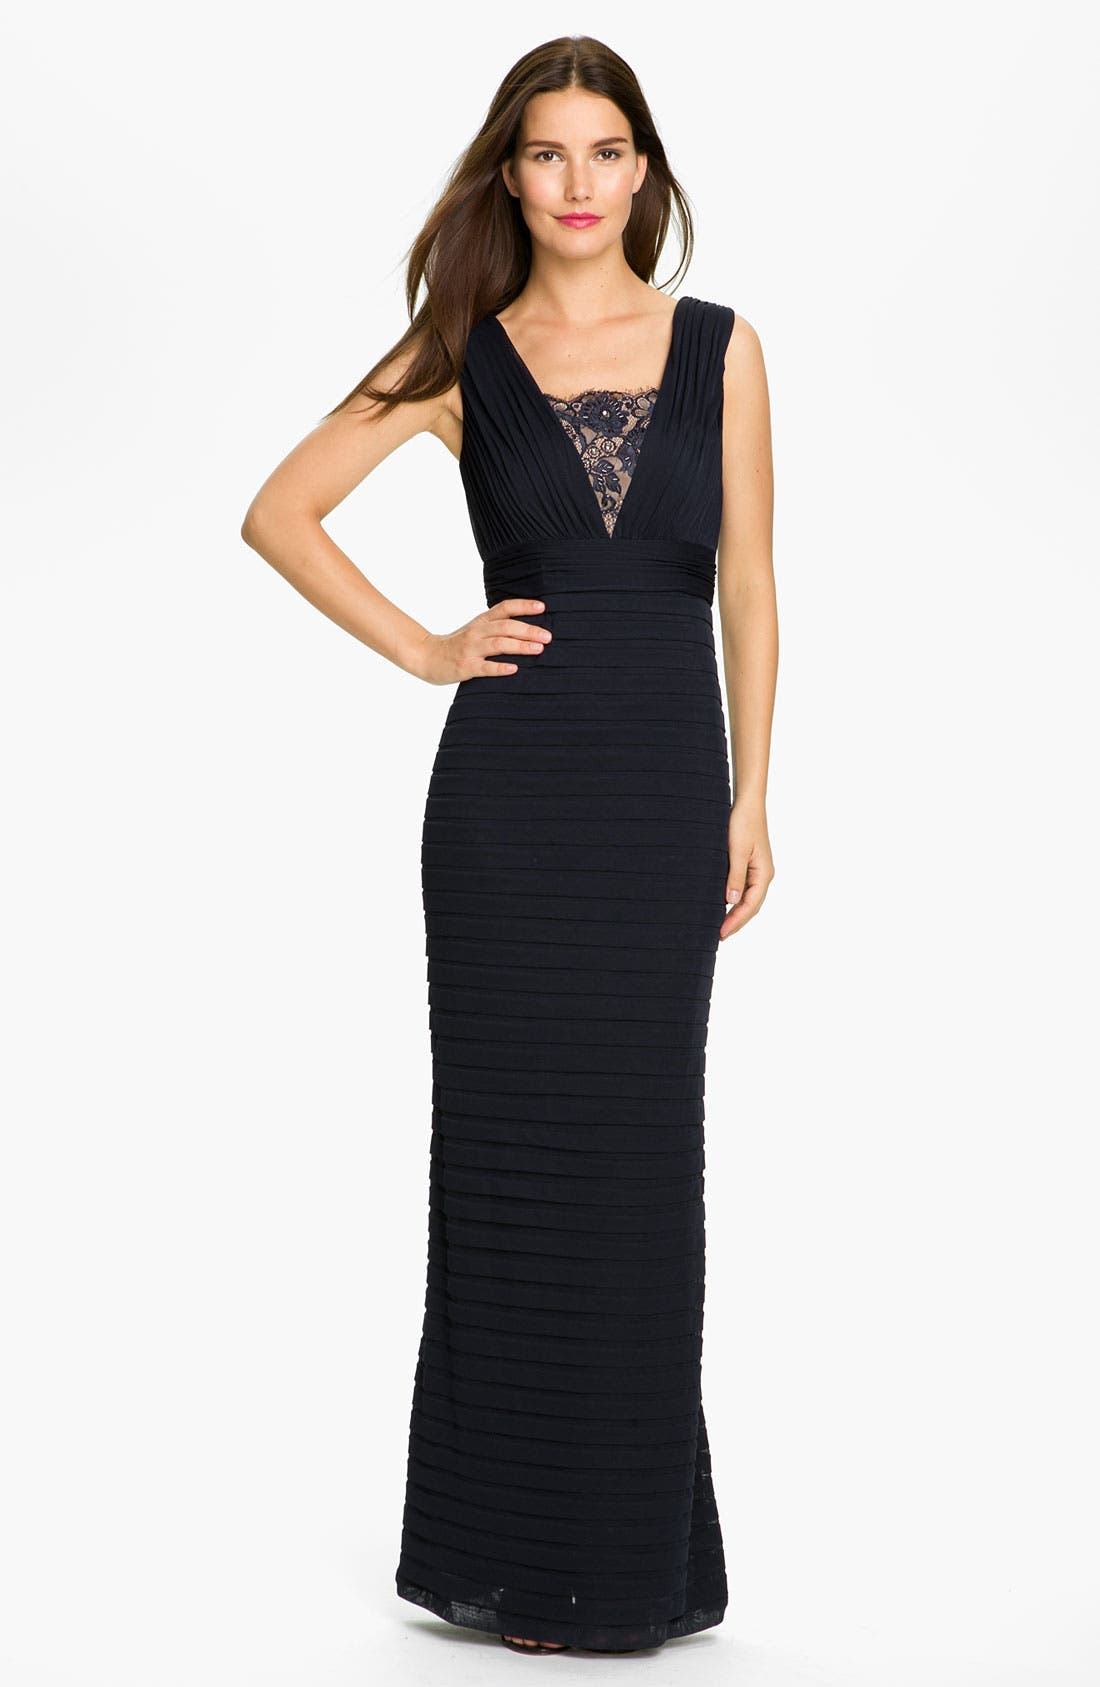 Main Image - Adrianna Papell Pleated Lace Inset Mesh Gown